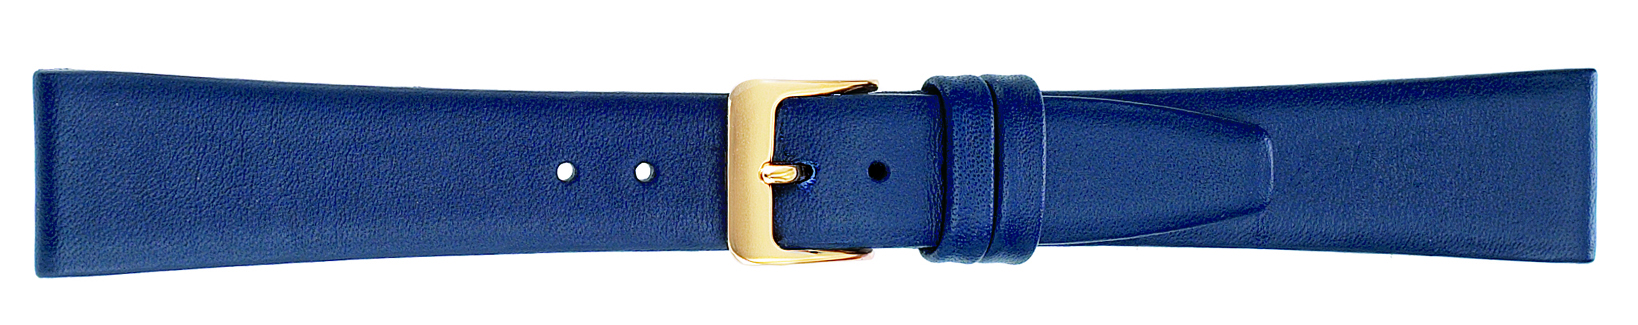 18MM Leather Band Navy Smooth Calf-0